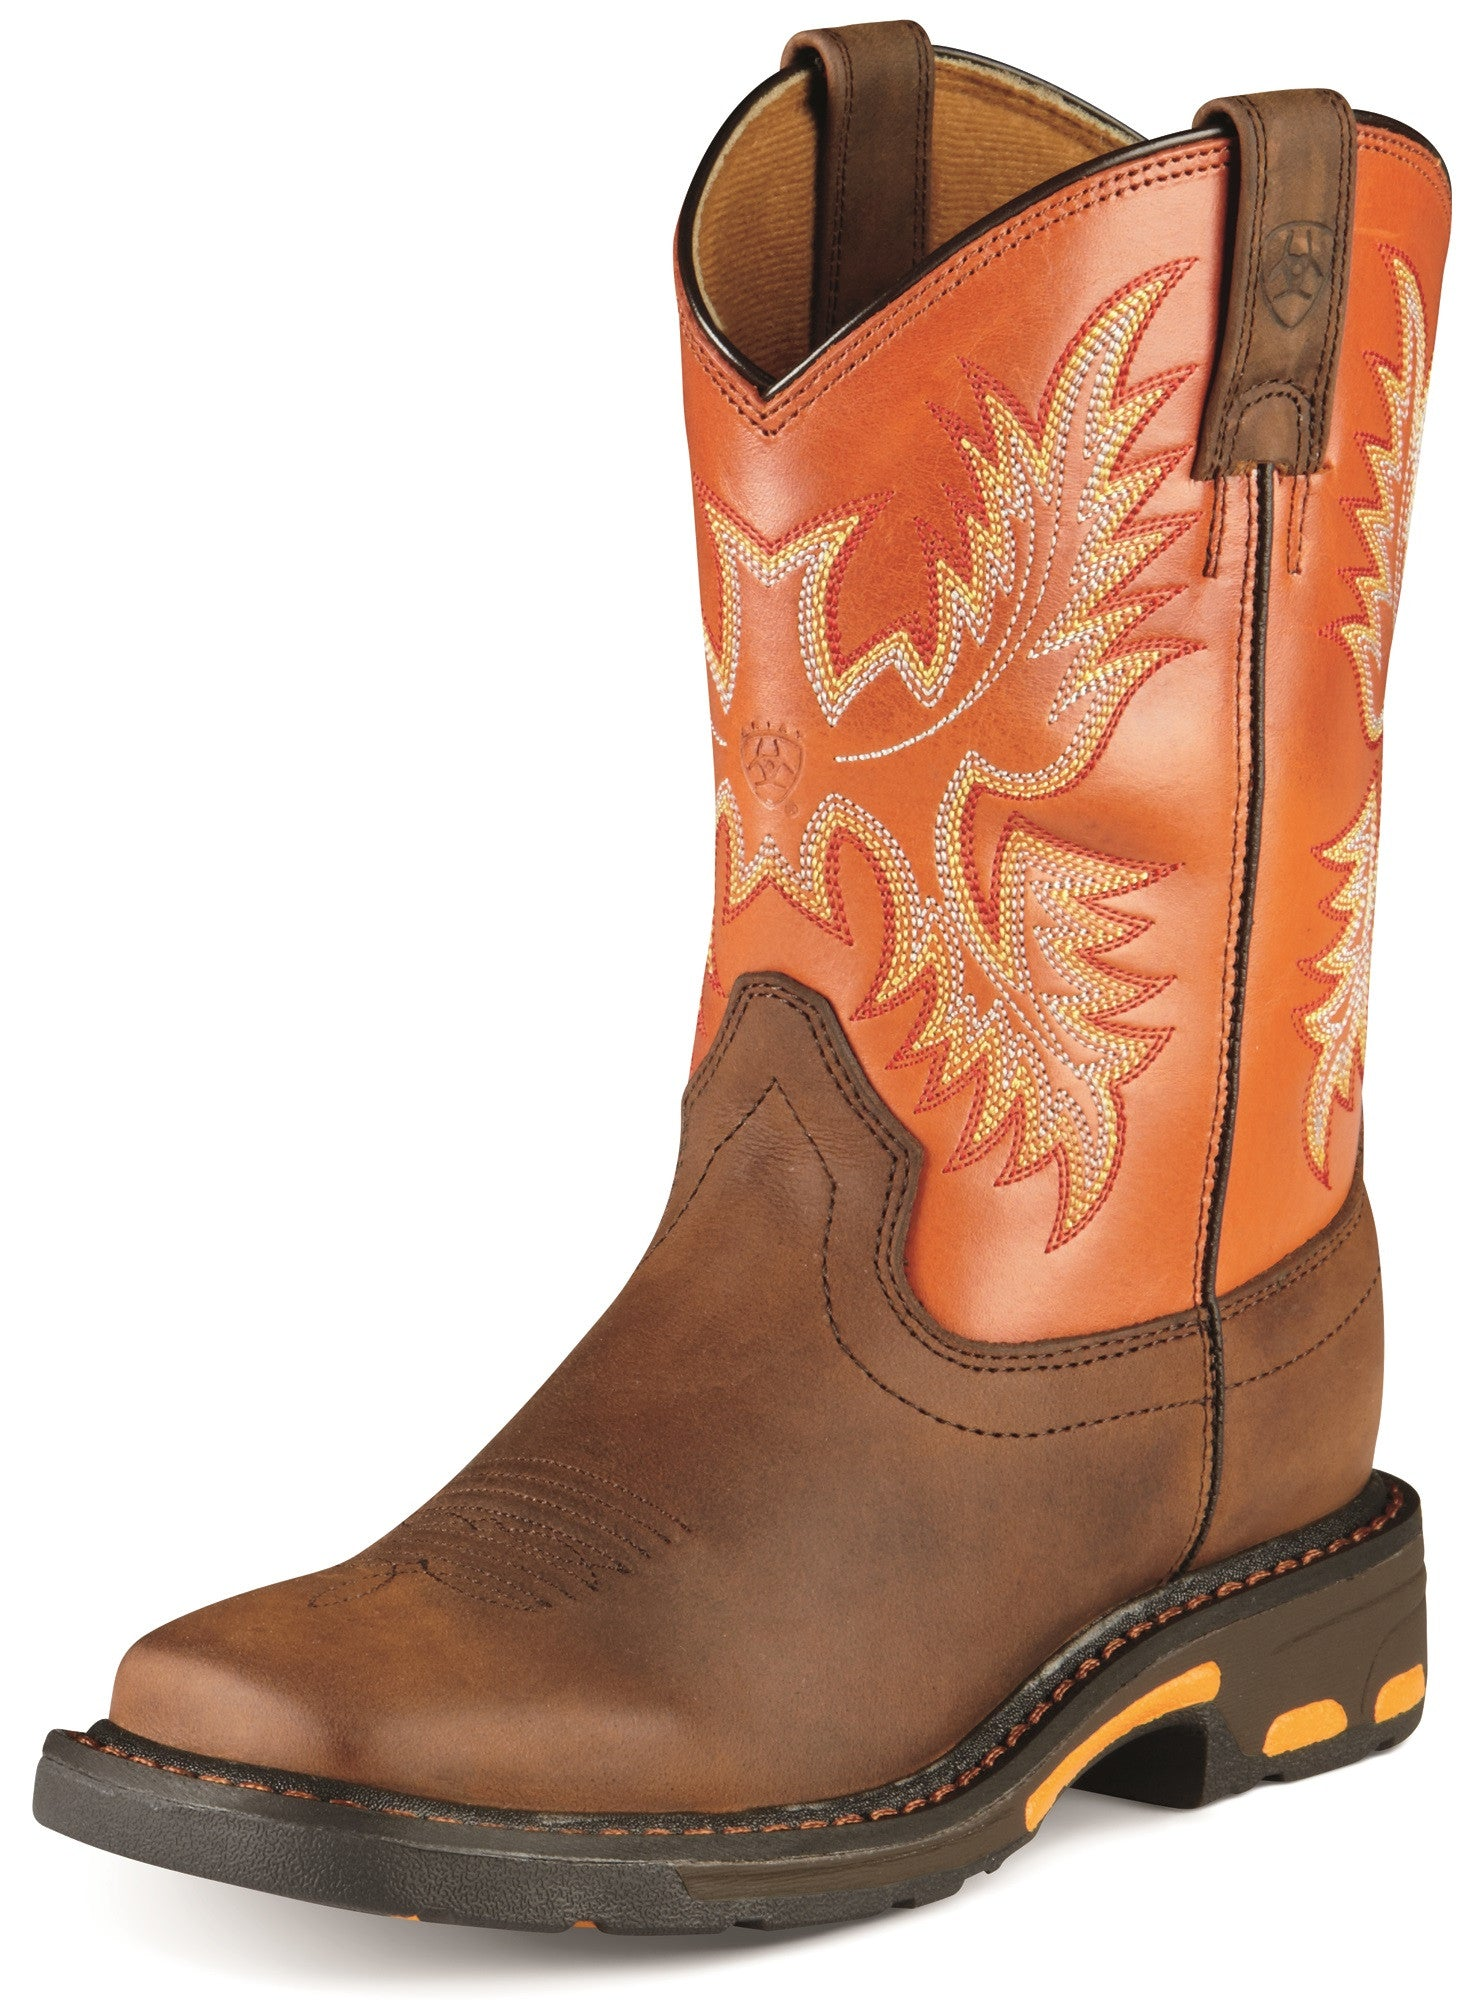 Children's/Youth's Ariat Workhog Boot #10007837 (8C-6Y)